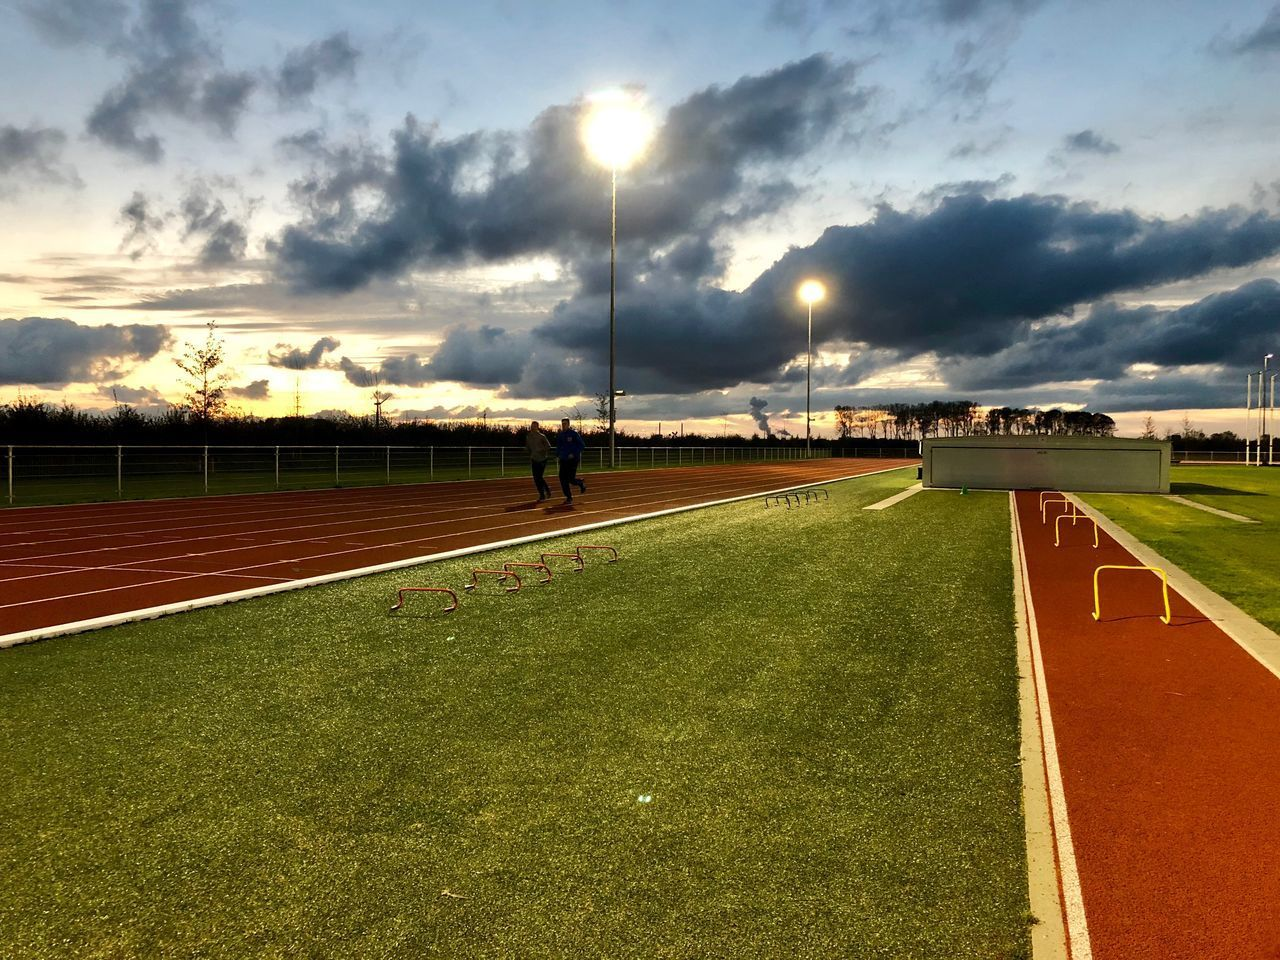 cloud - sky, sky, sport, nature, grass, track and field, running track, sports track, sunset, built structure, real people, incidental people, architecture, sunlight, outdoors, plant, people, men, building exterior, day